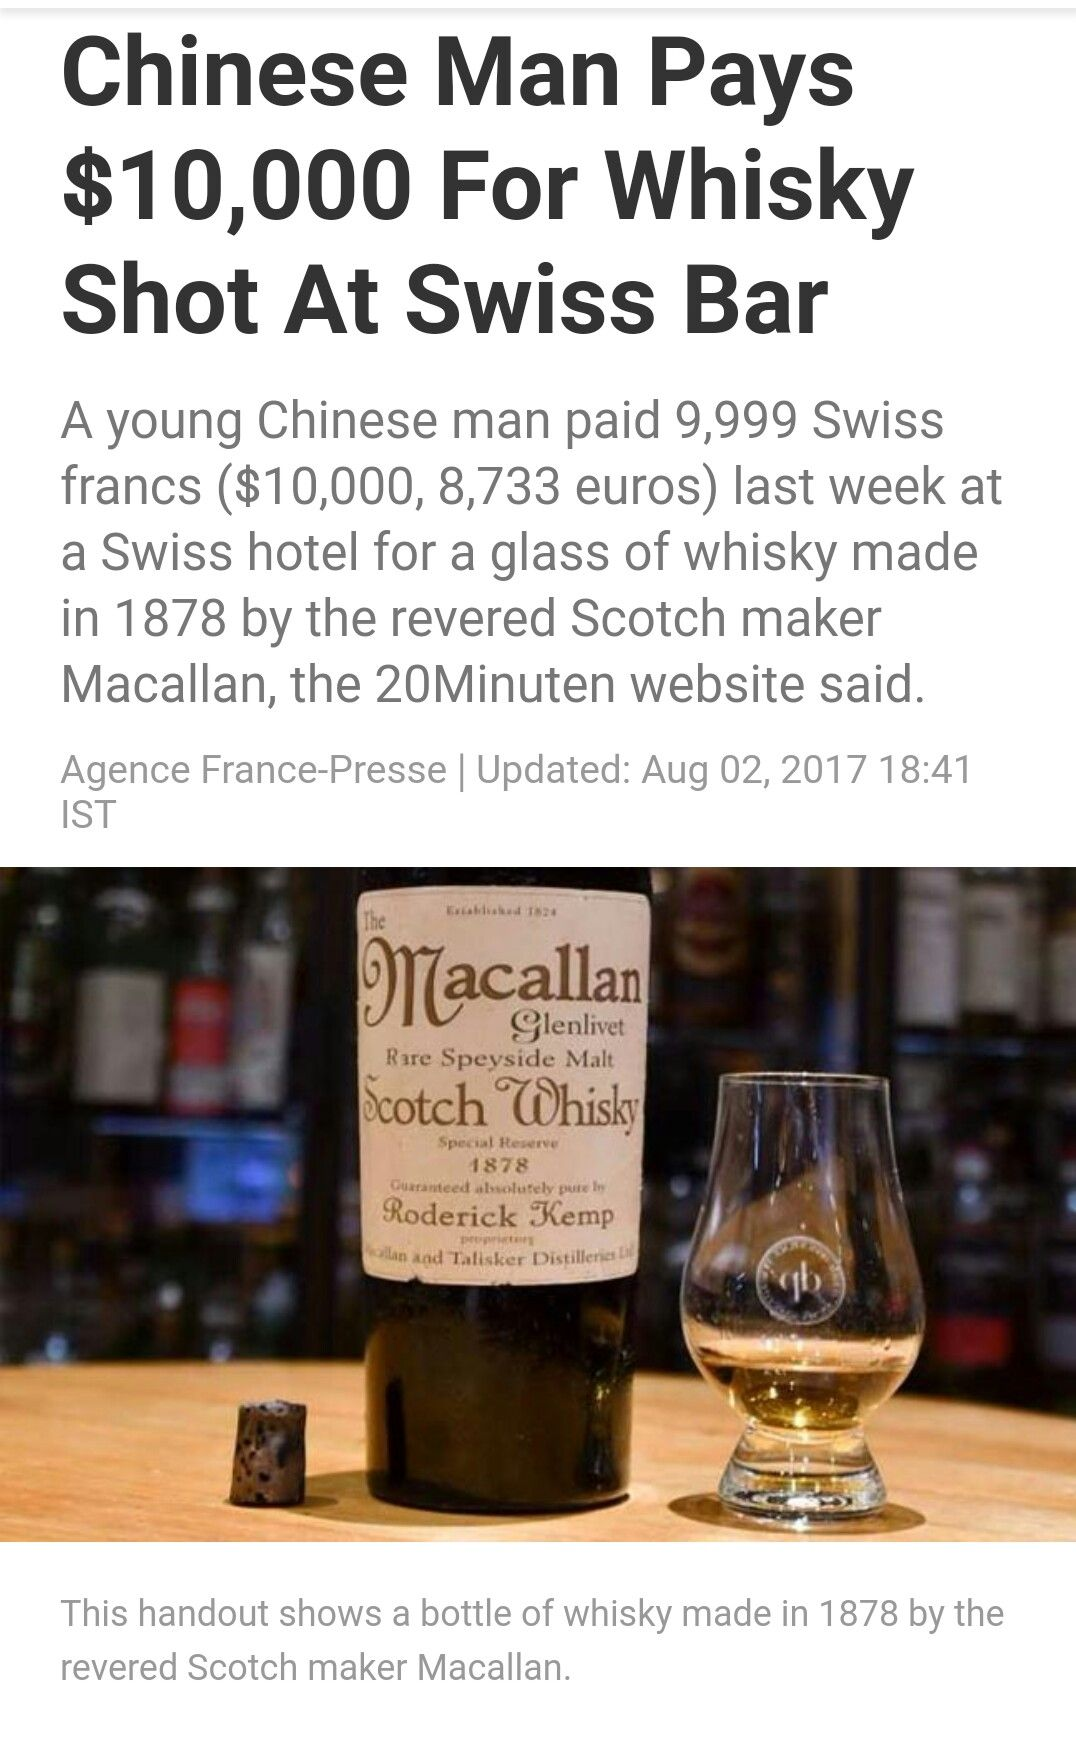 The $10,000 glass of Whisky. Macallan 1878.